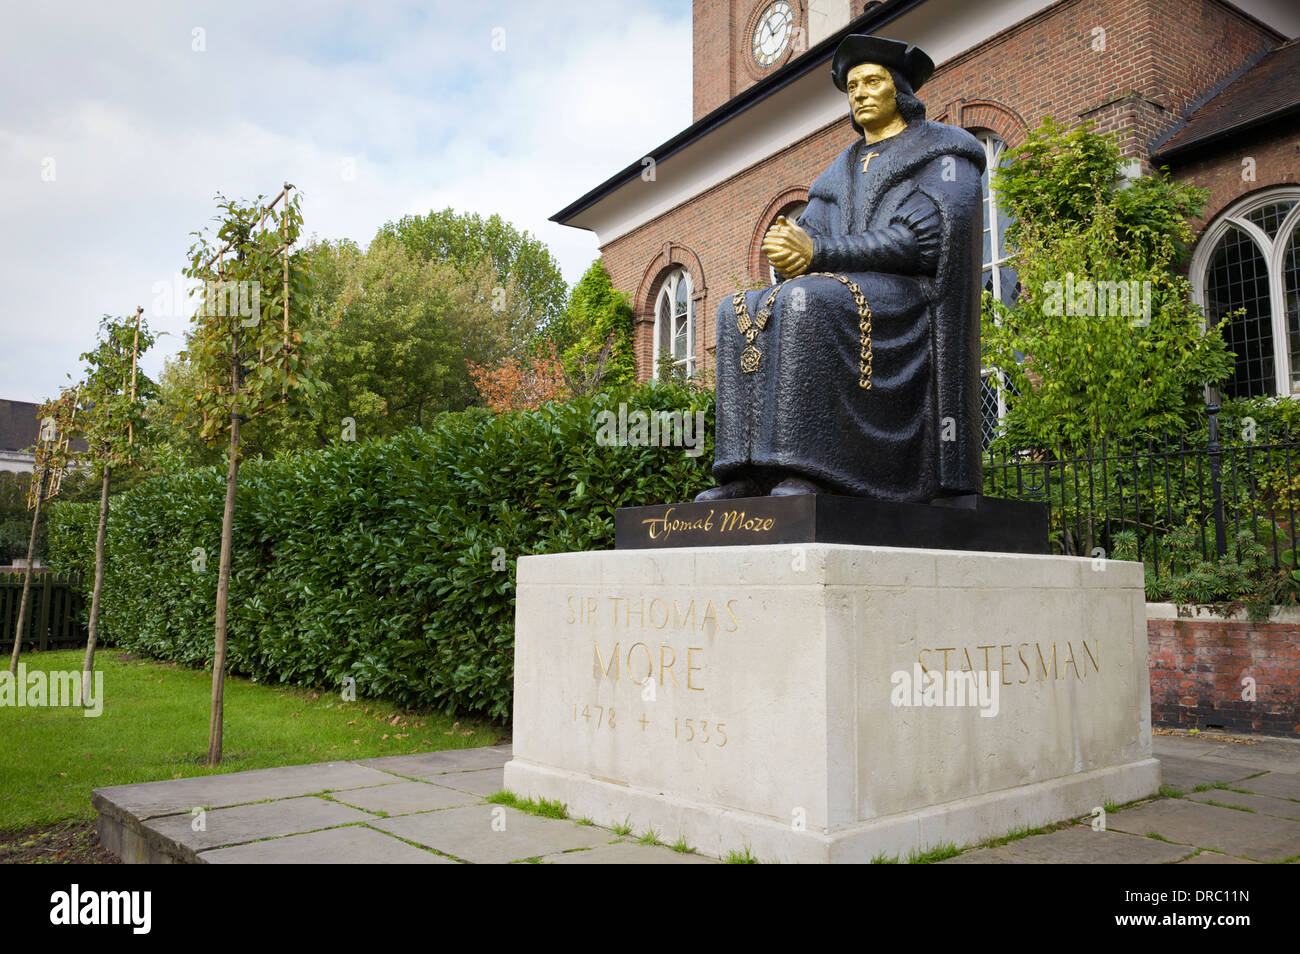 The statue of Sir Thomas Moore outside Chelsea Old Church, London, UK. - Stock Image